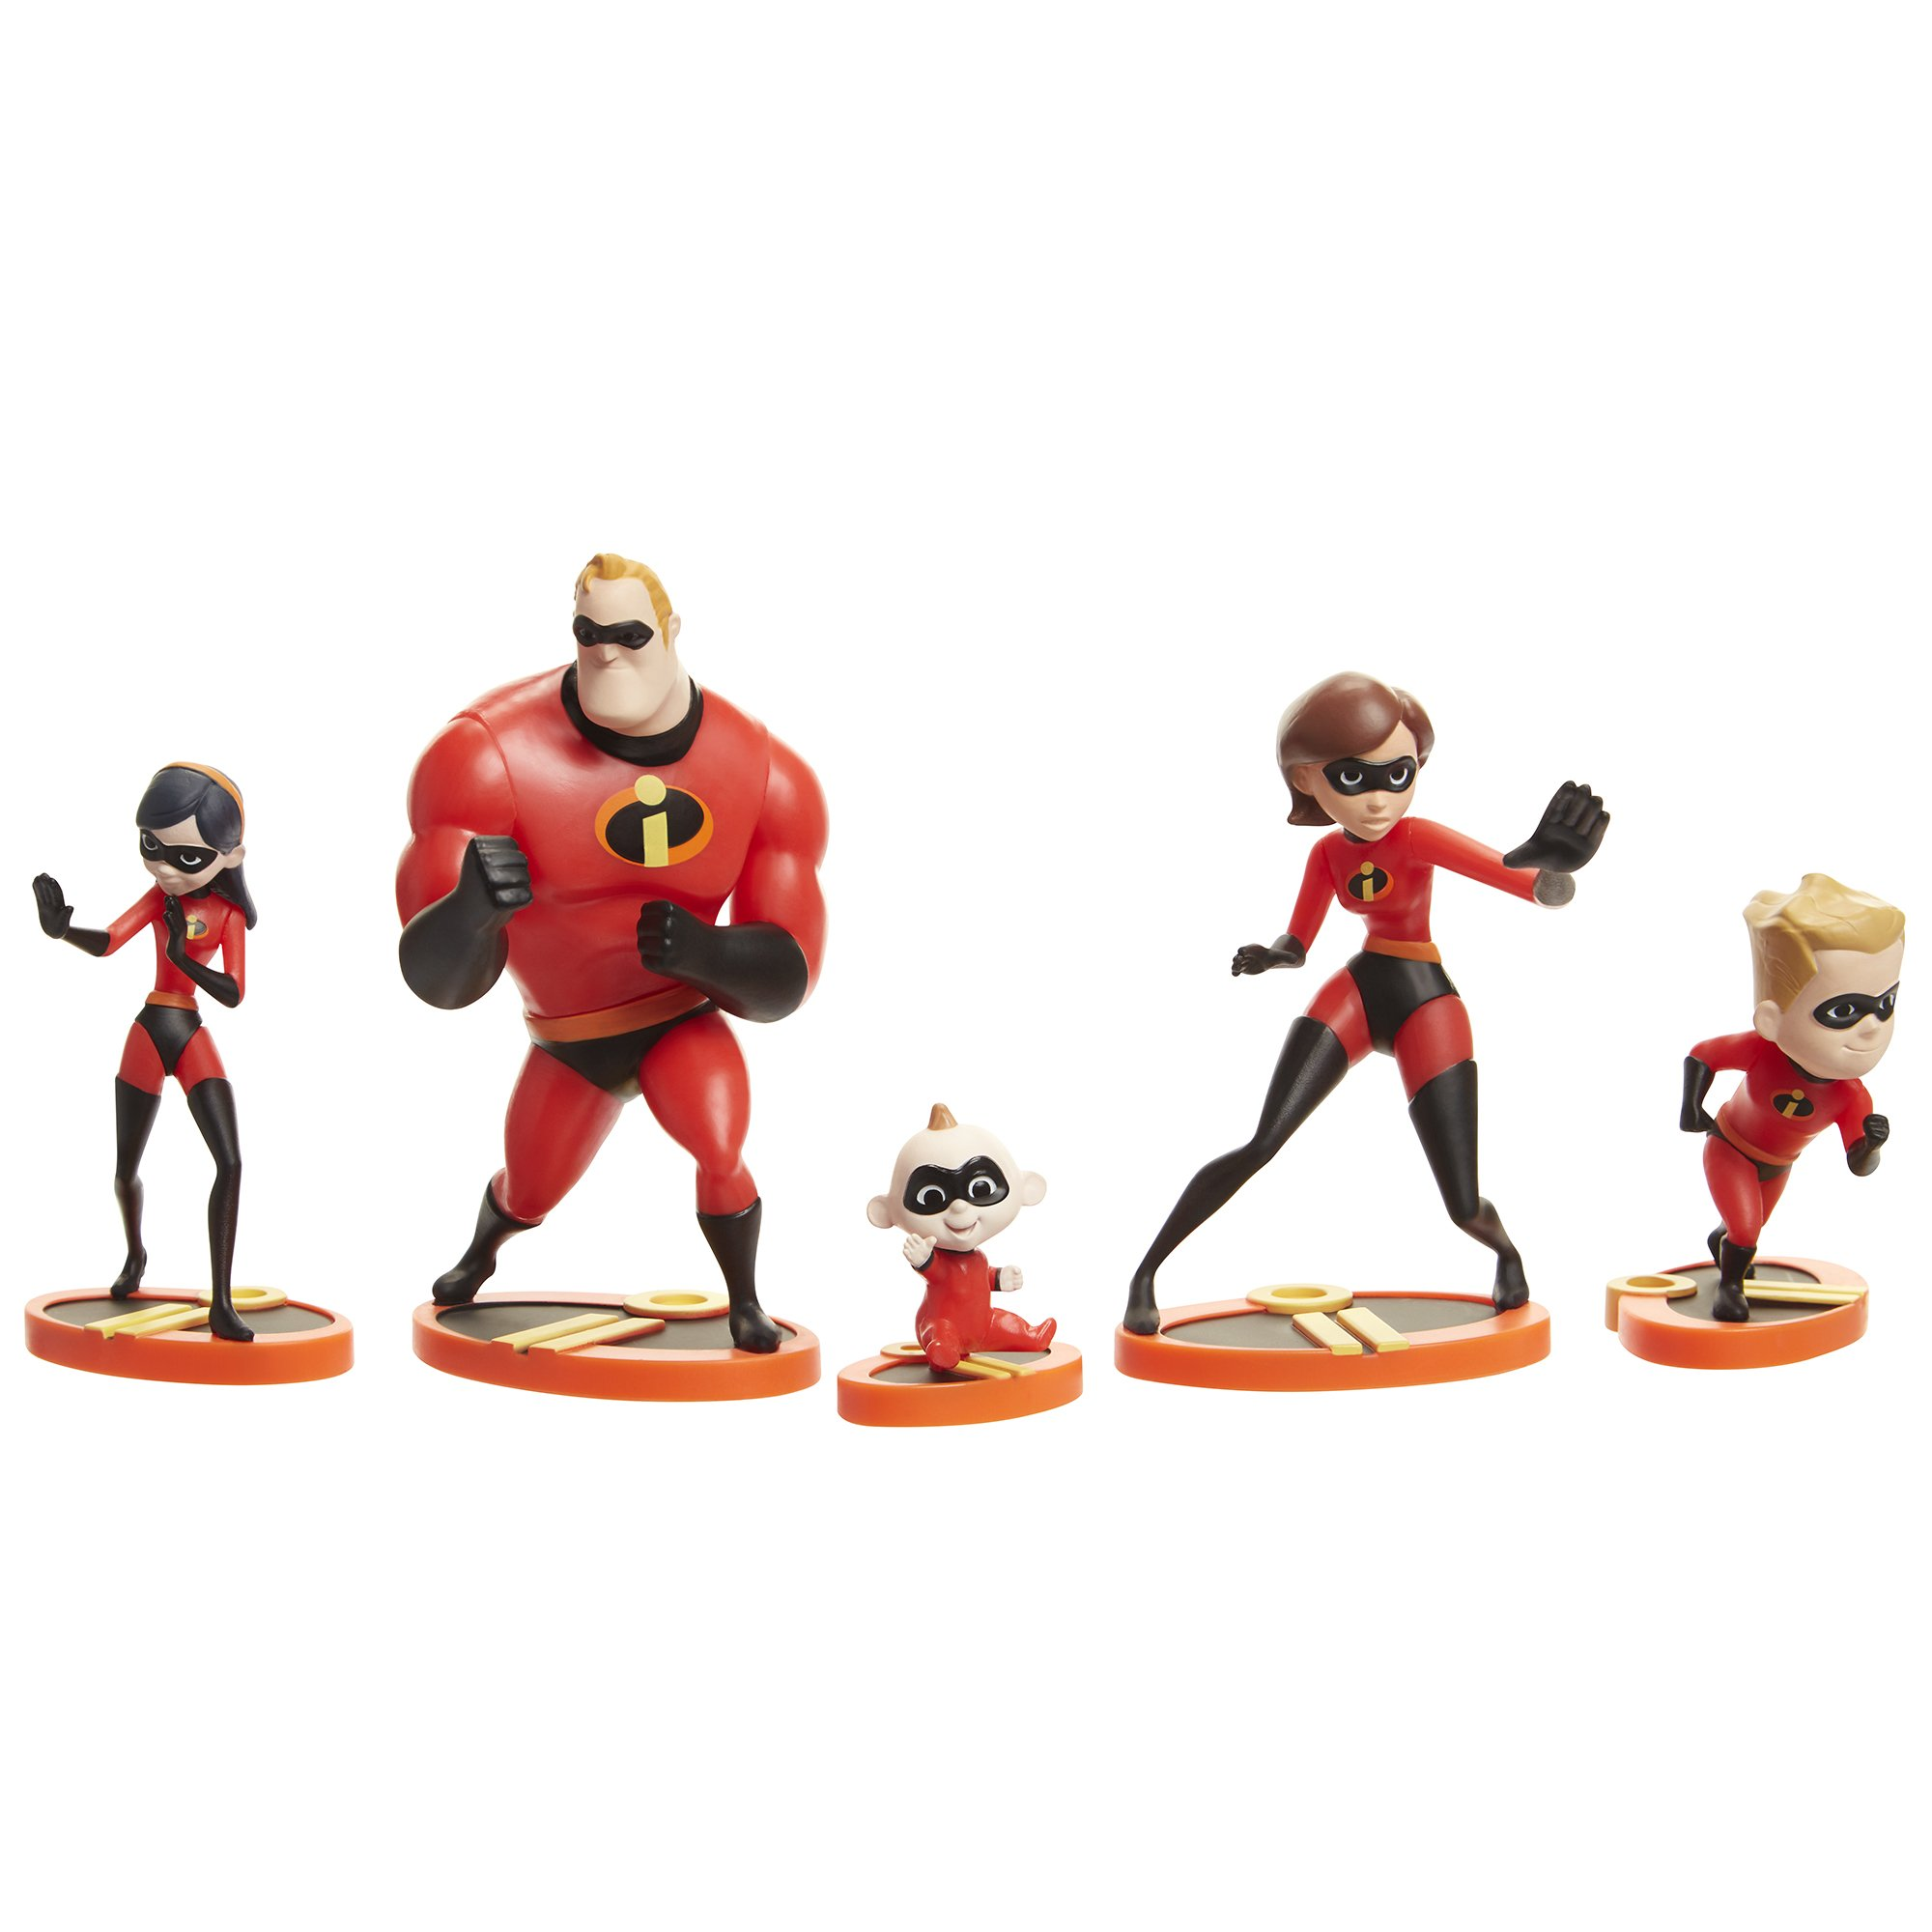 The Incredibles 2, 5 Piece Family Figure Set Comes with (Mr./Mrs. Incredible, Violet, Dash, Jack Jack) by The Incredibles 2 (Image #1)